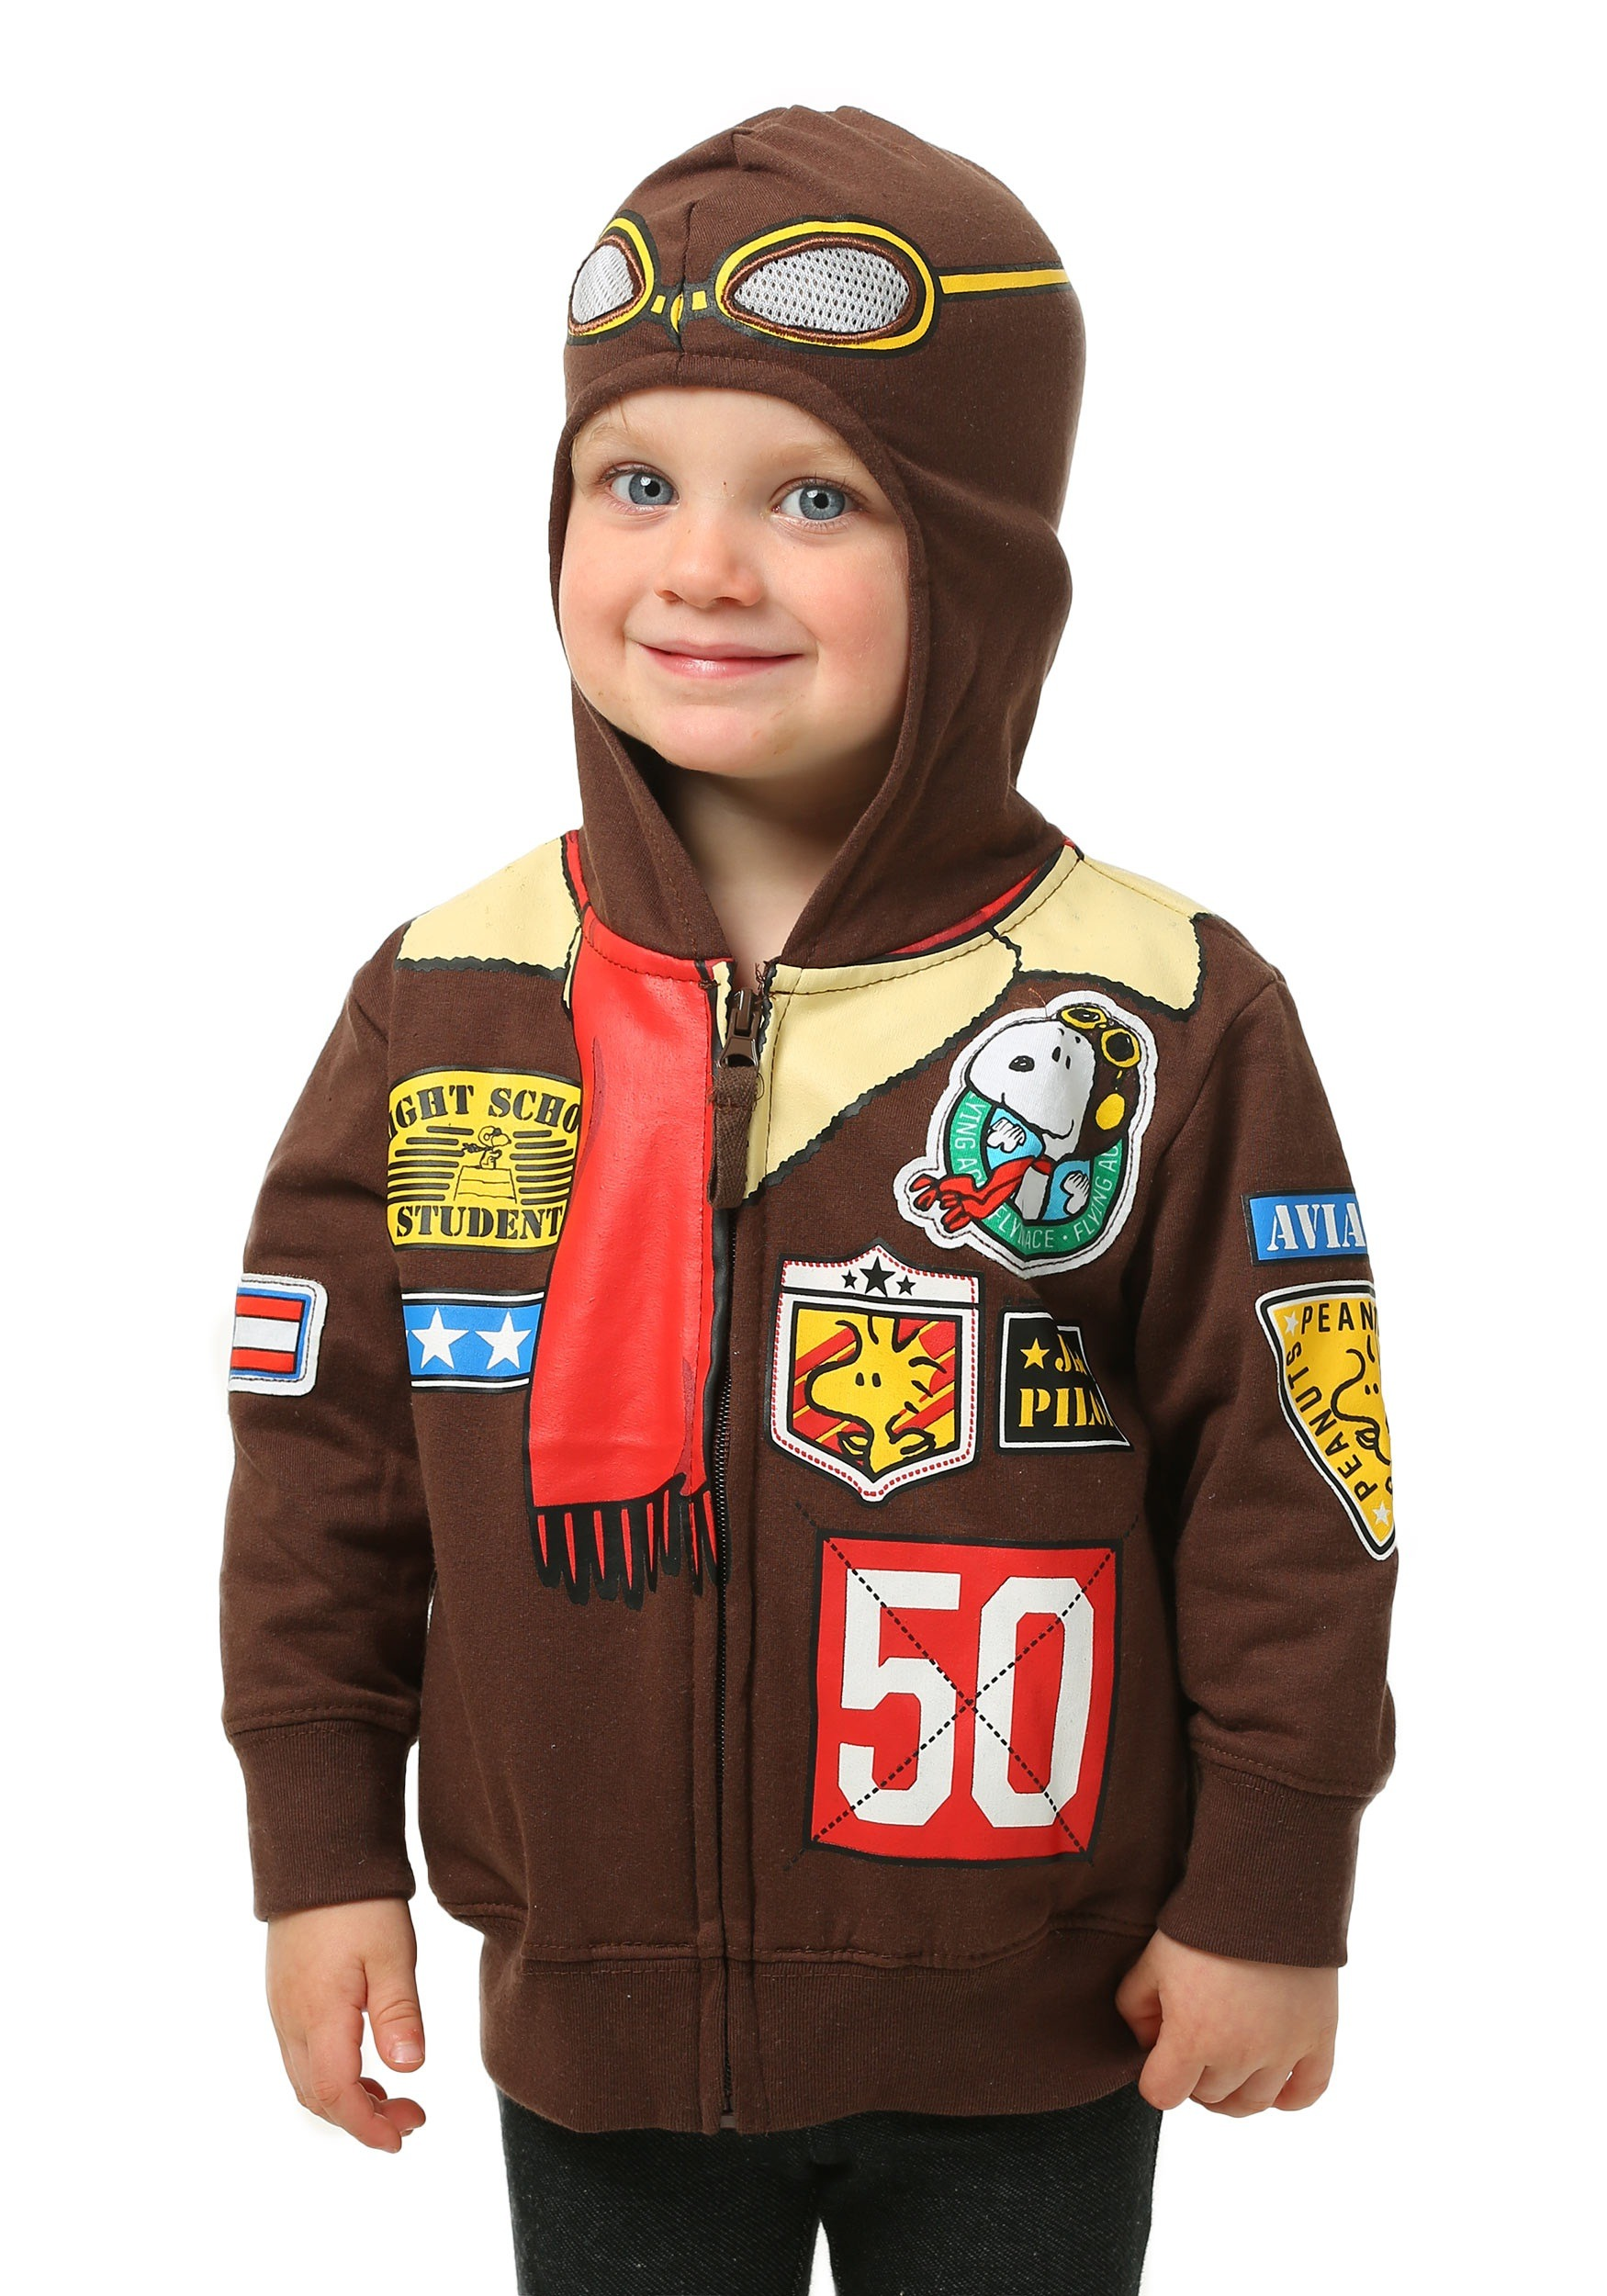 Peanuts Snoopy Toddler Boys Bomber Jacket Hooded Sweatshirt Costume